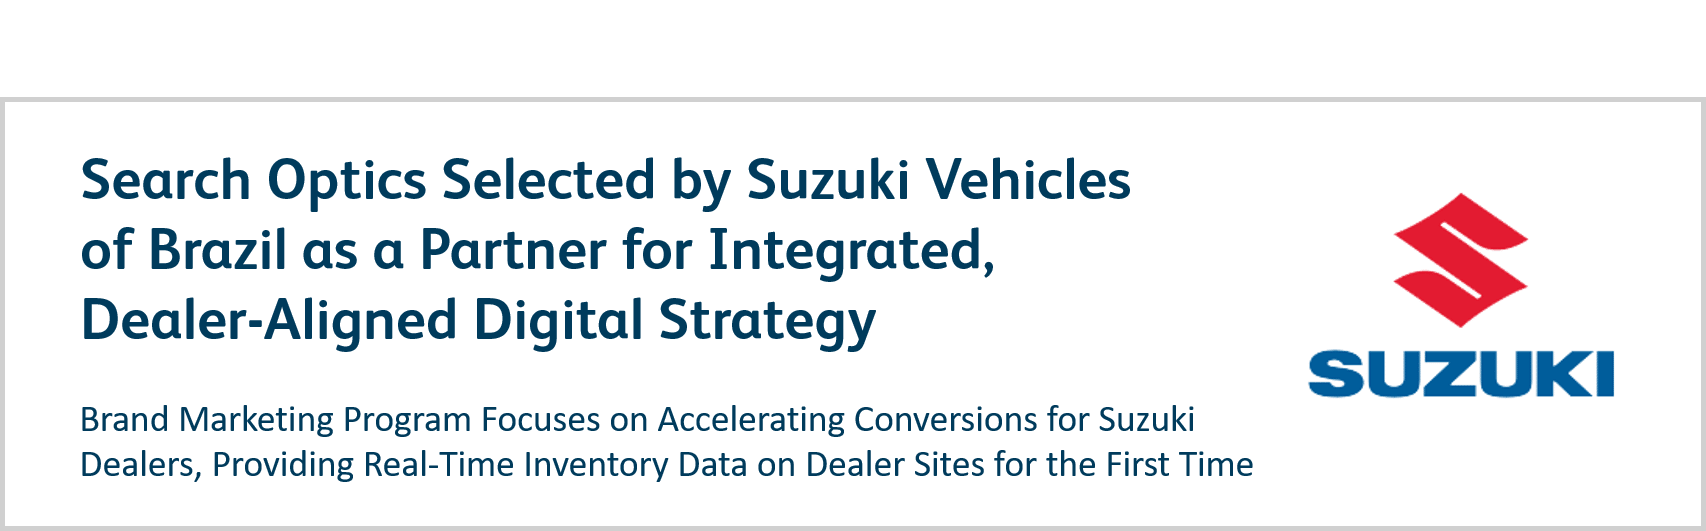 Search Optics Selected by Suzuki Vehicles of Brazil as a Partner for Integrated, Dealer-Aligned Digital Strategy